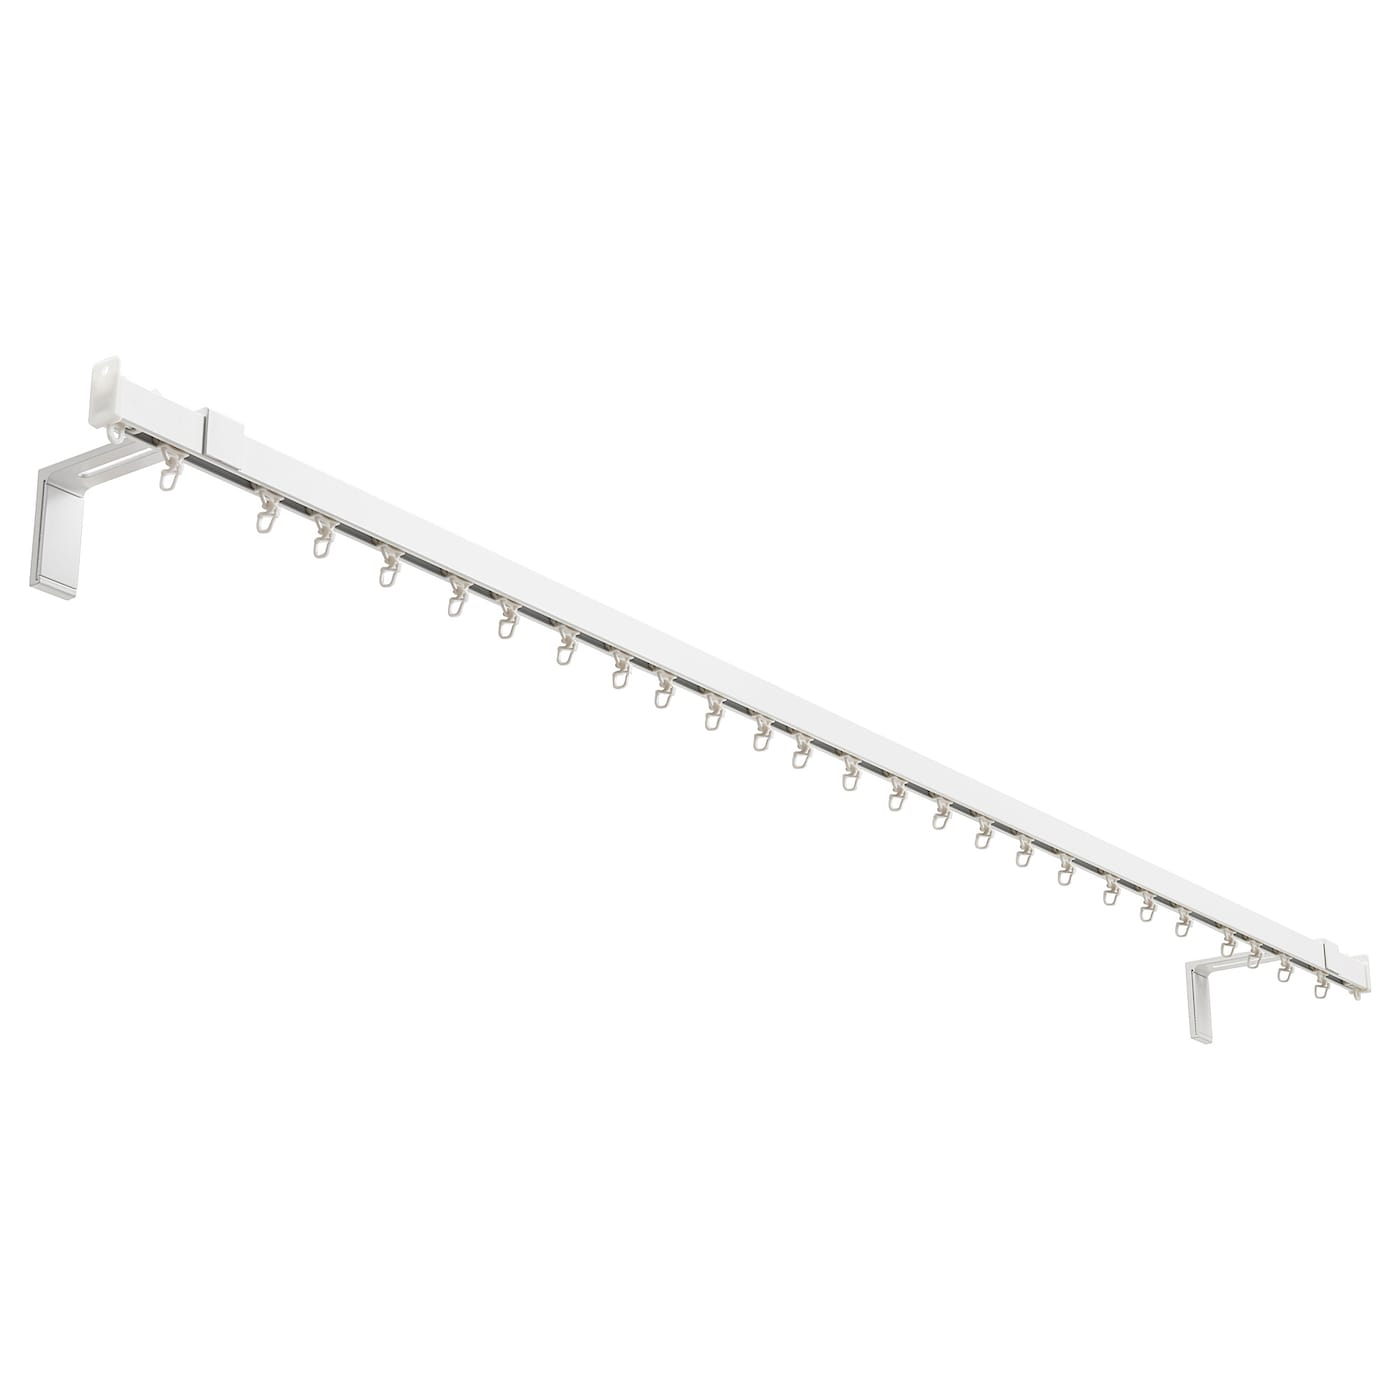 IKEA VIDGA single track set for wall The rail can be cut to the desired length with a hacksaw.